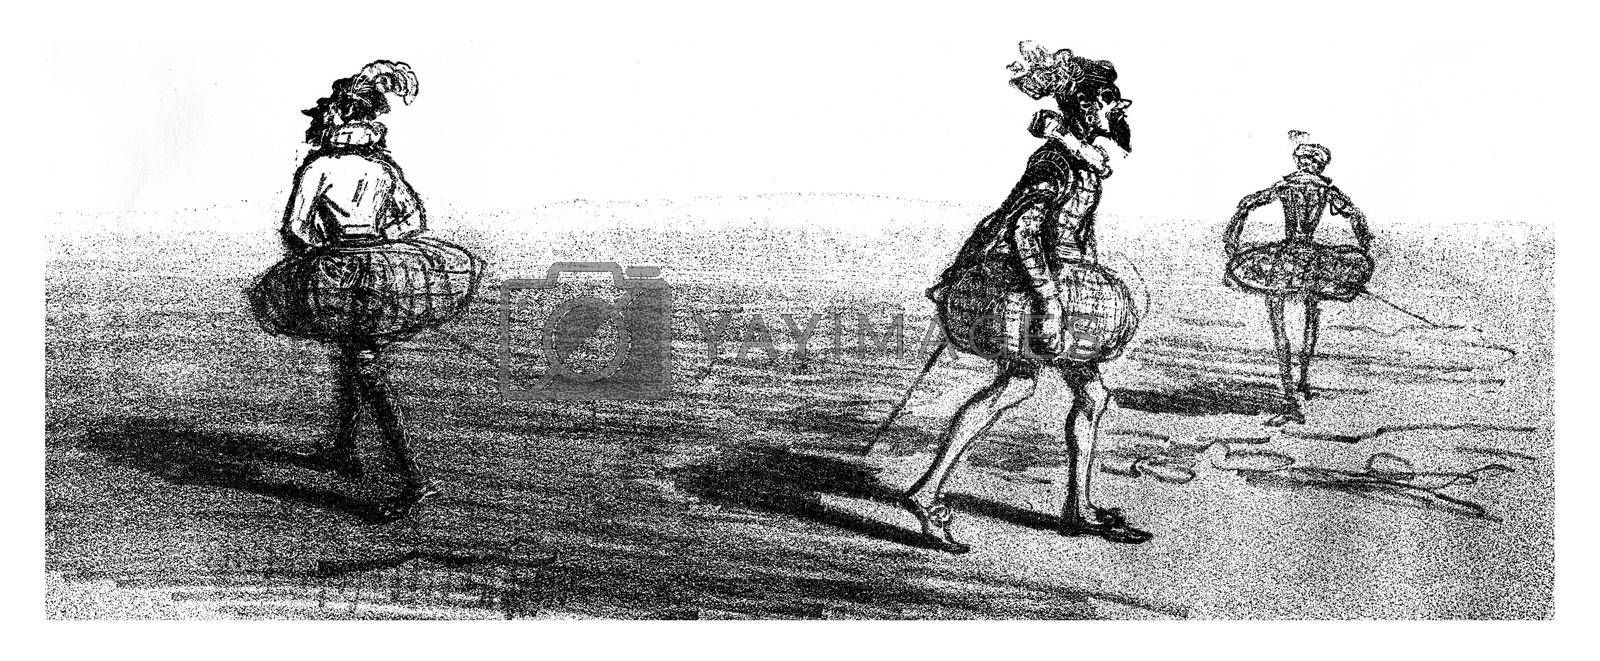 After long standing in a happy medium, vintage engraved illustration. From The Tortures of Fashion.